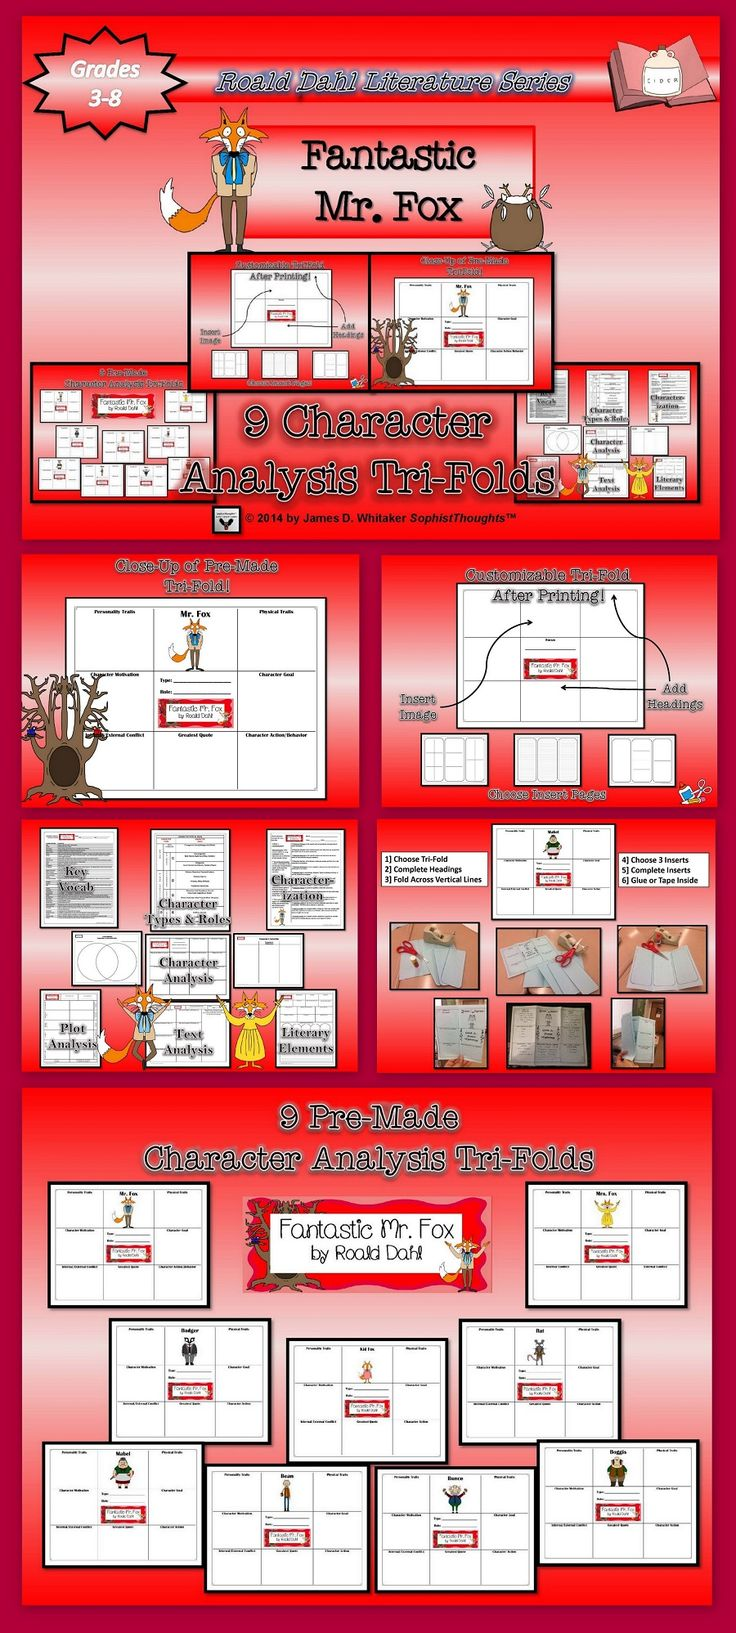 plore the idiosyncrasies and antics of the characters in Roald Dahl's clever novel Fantastic Mr. Fox. You can design your own foldable (after printing) by creating your own headings. You can also have students create them for a more inclusive activity. Tri-Folds are the perfect companion activity for the novel. Works well for bulletin board display, end project, book report or traditional essay alternative.